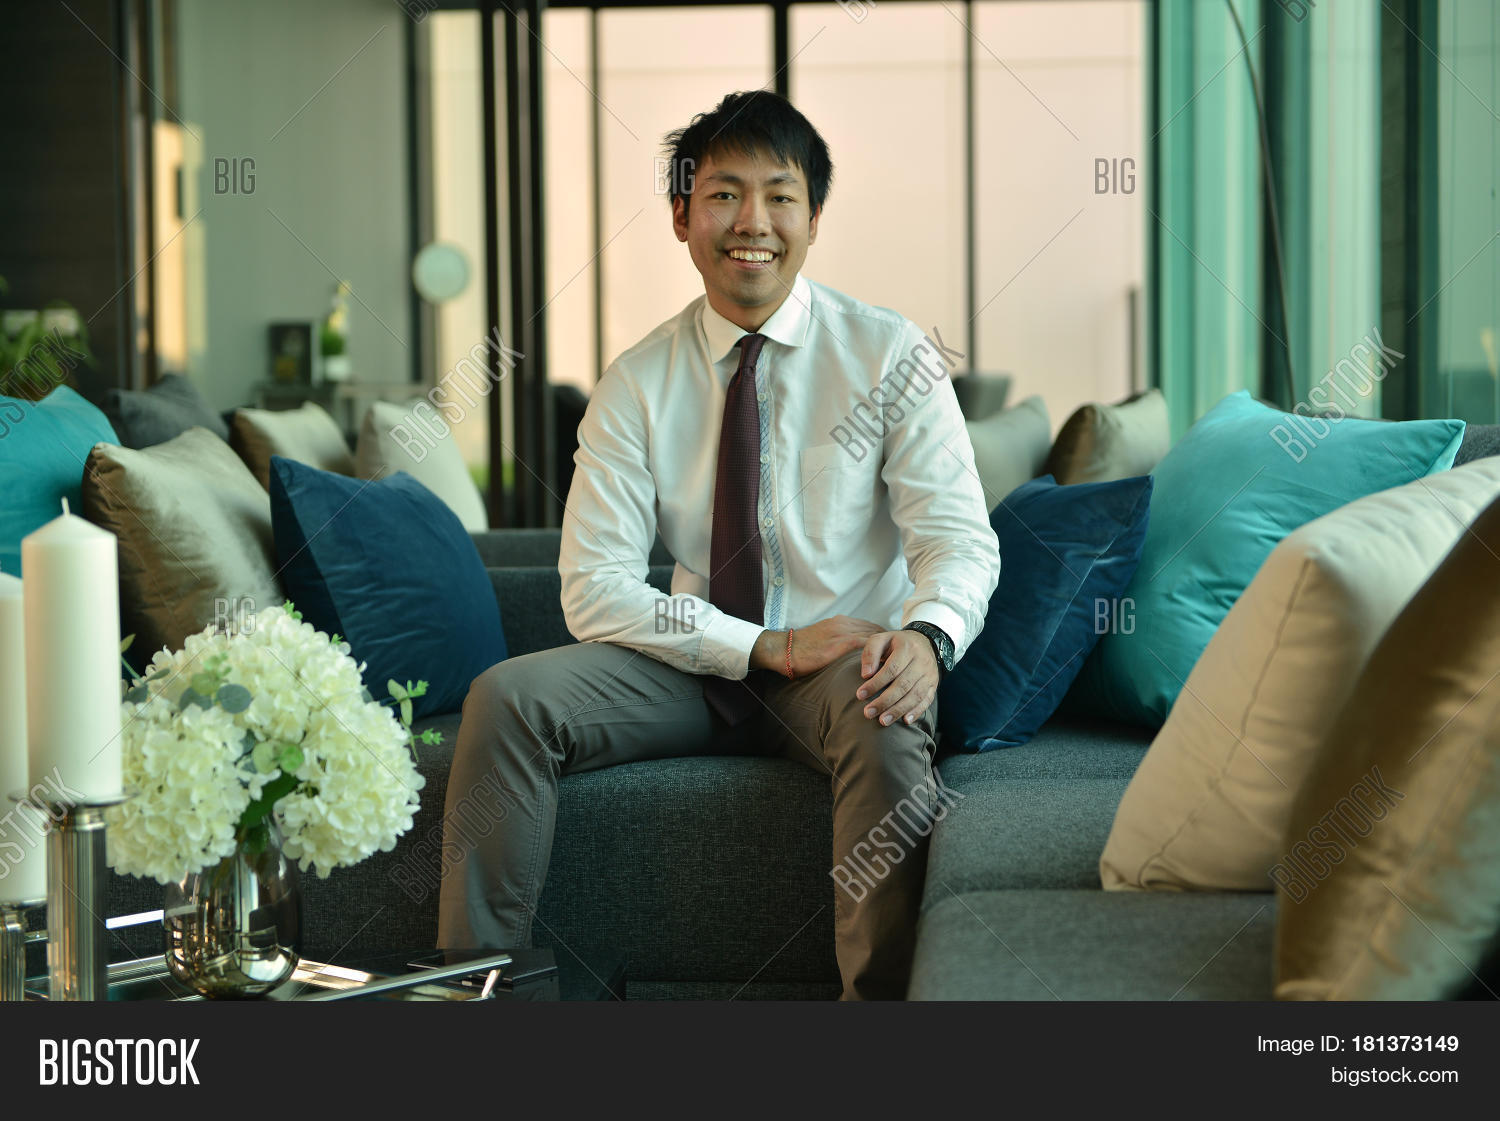 An Asian Business Man Sitting In Luxury Lobby In Hotel, Person